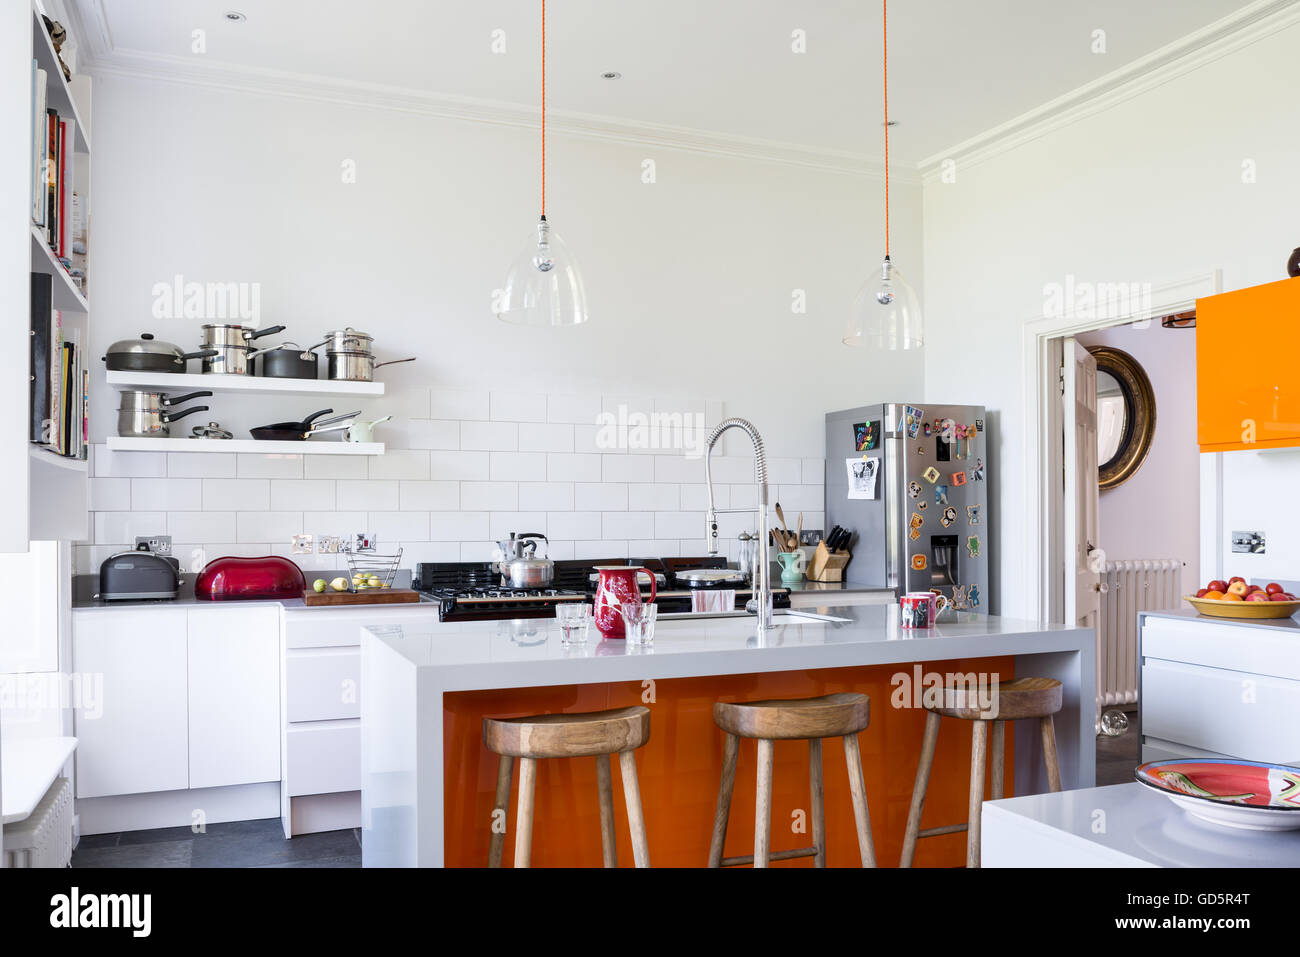 Wooden bar stools in high ceilinged kitchen with white metro tiles. The clear glass dome lights are from Baileys - Stock Image